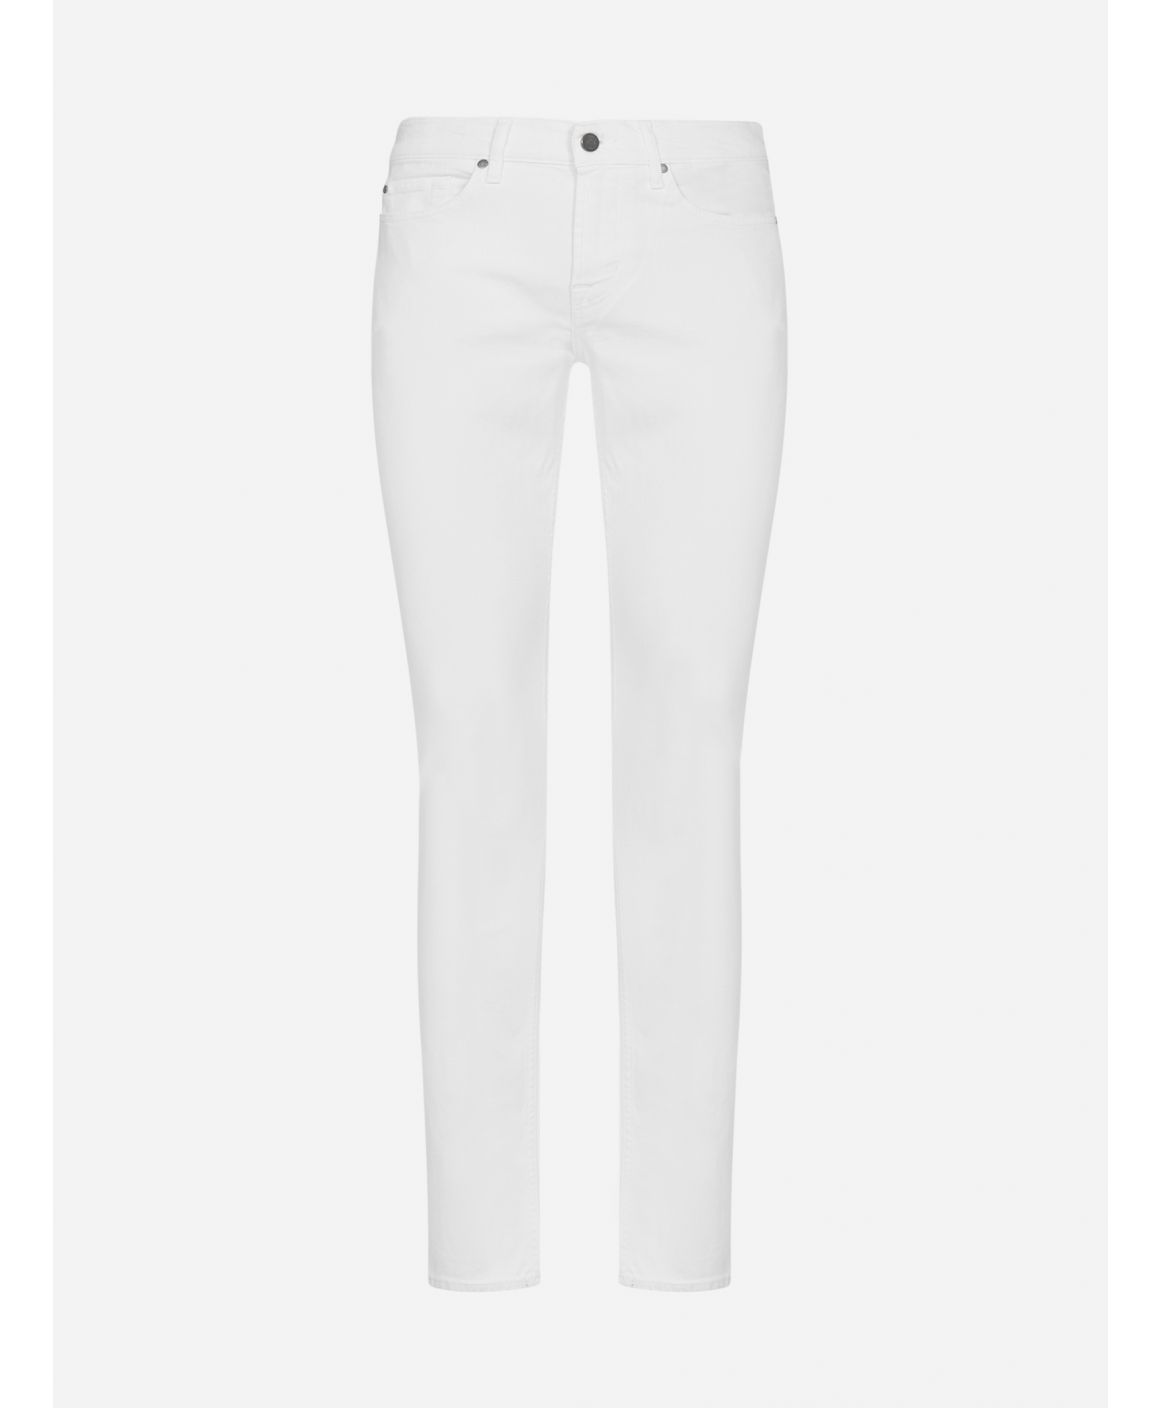 Ronnie luxe performance jeans